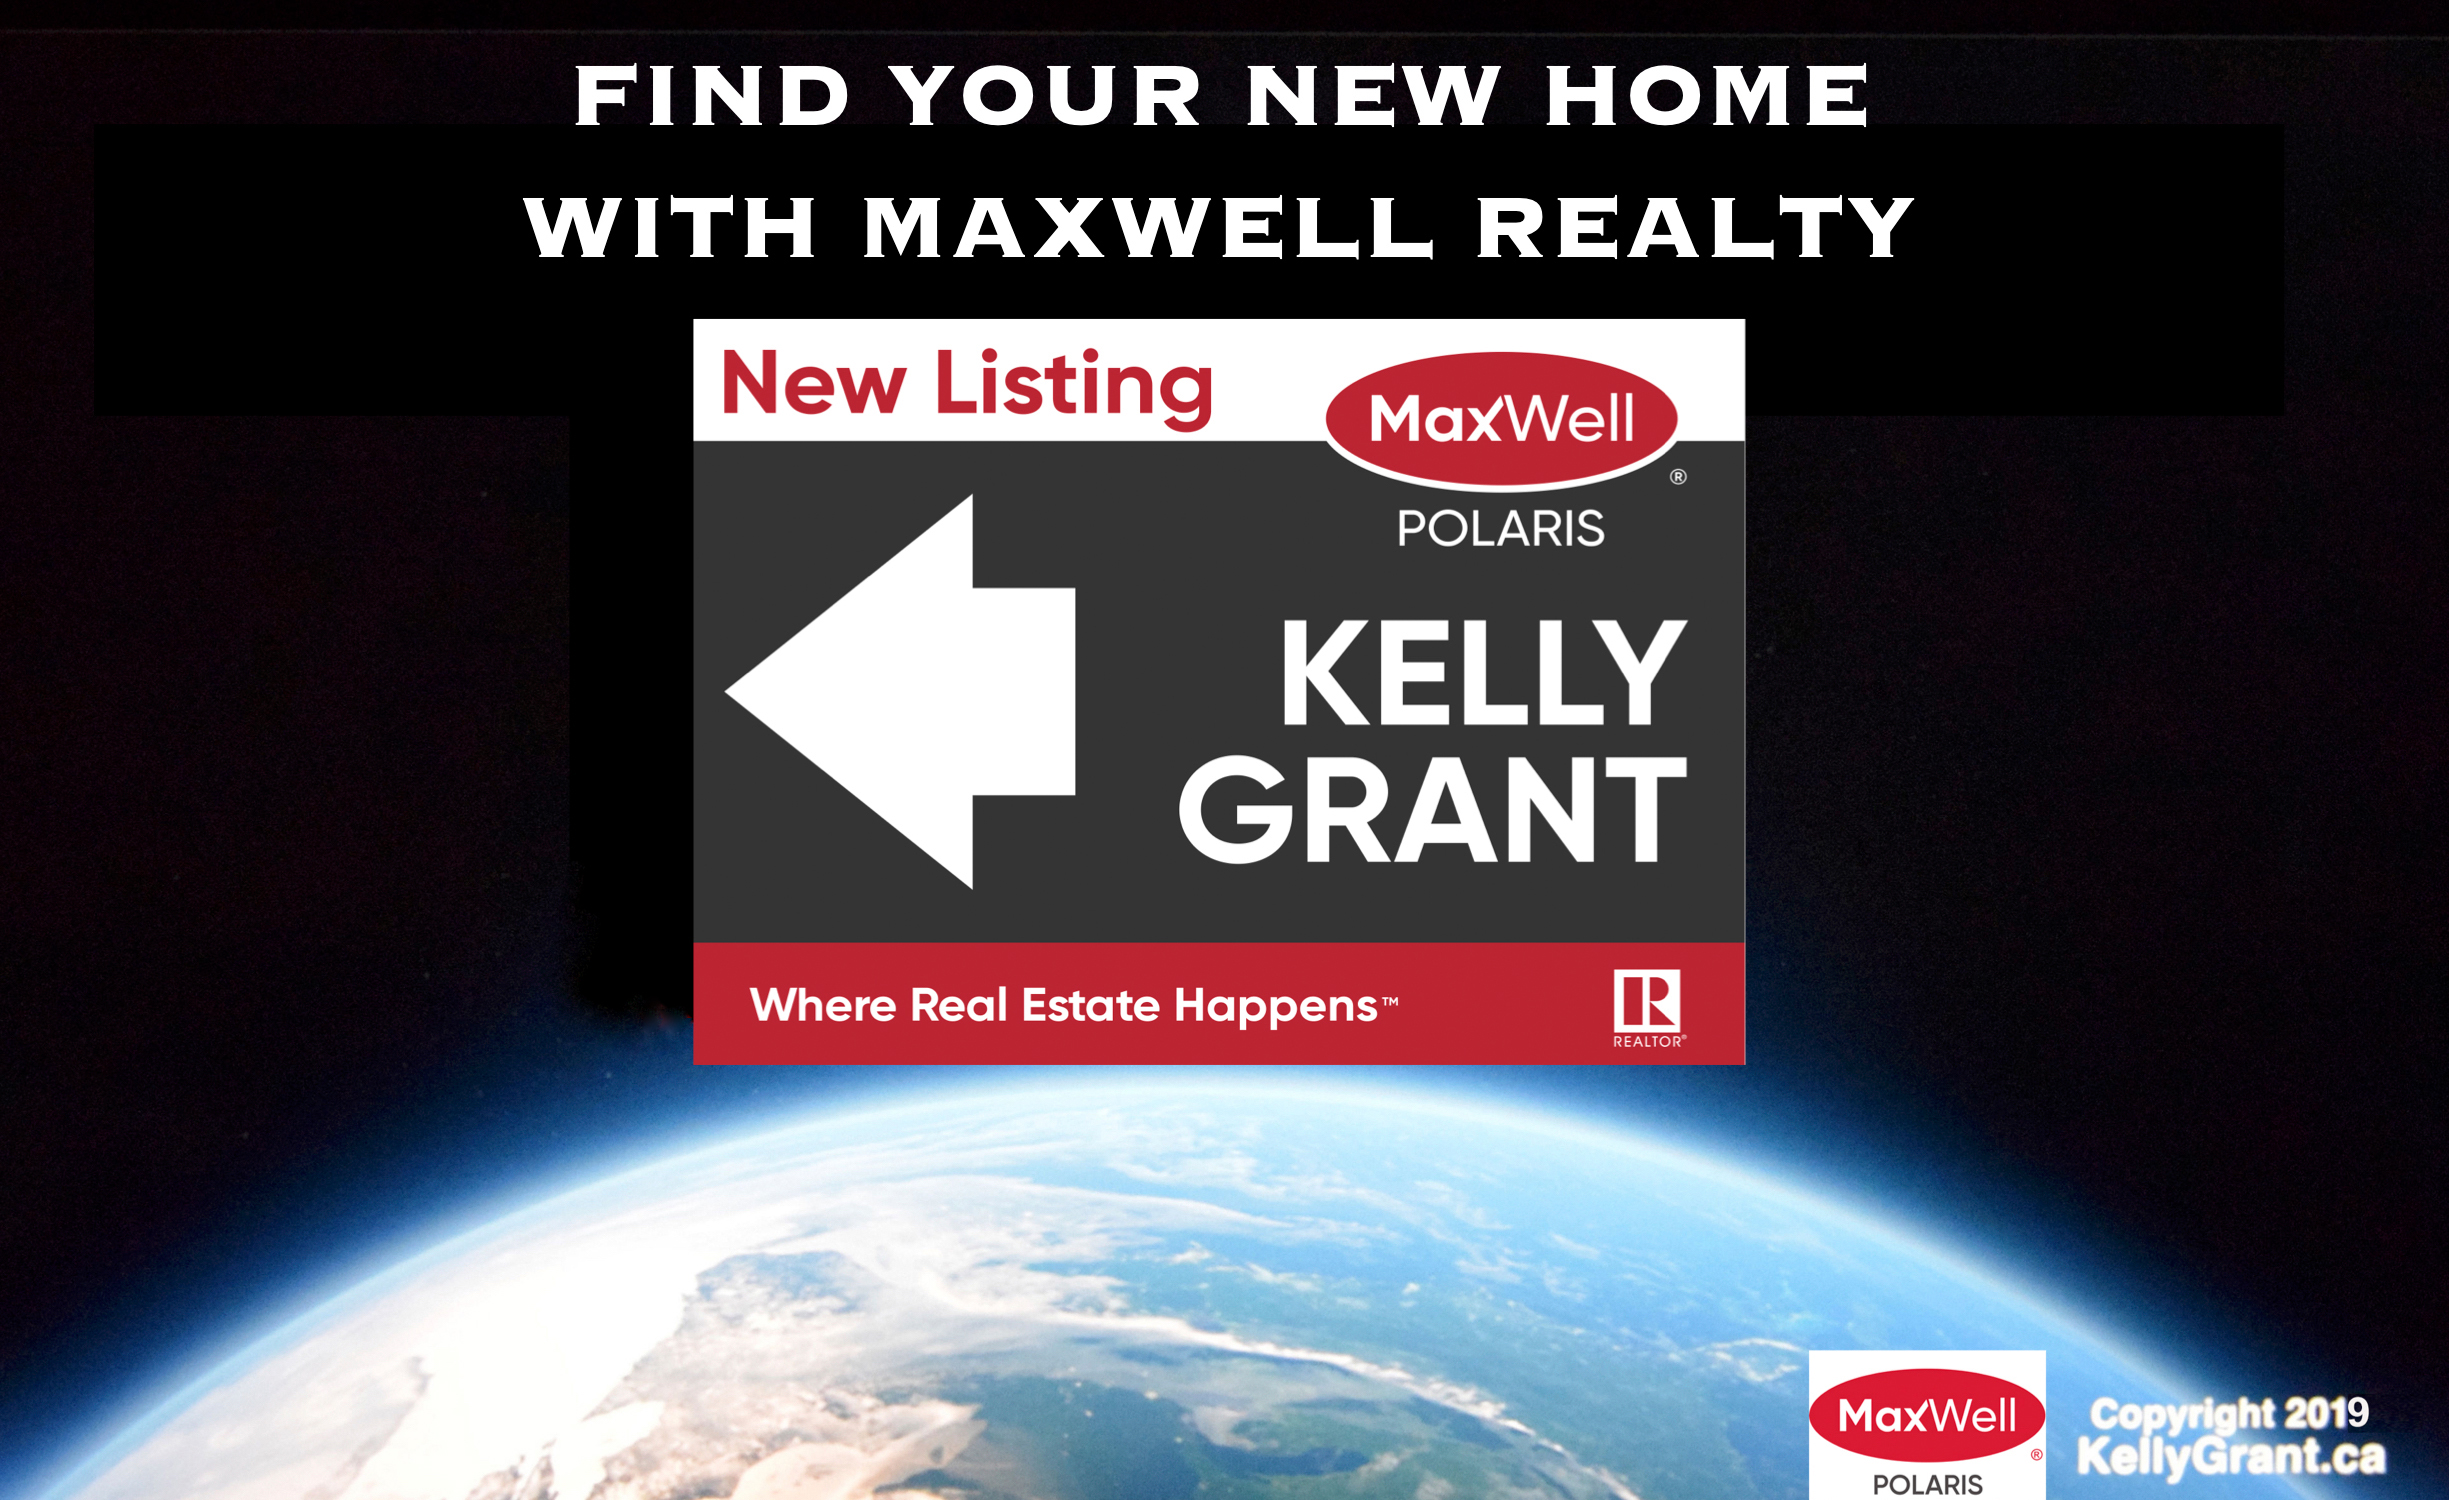 KG MaxWell Find Your New Home.jpg